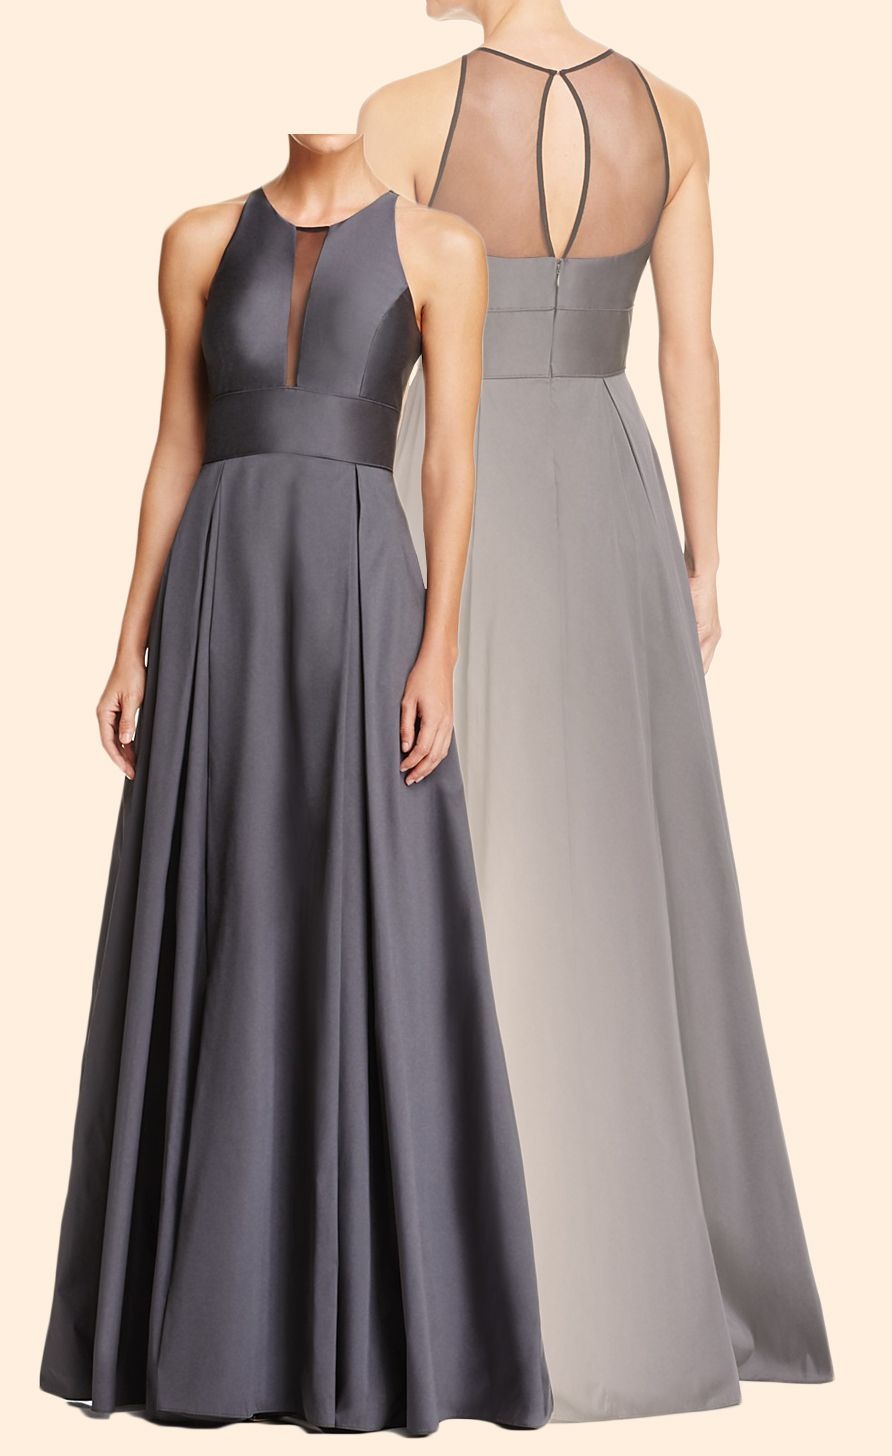 ce8eb36263a Elegant O Neck Chiffon Gray Long Prom Dress Simple Formal Evening Gown  Gorgeous Prom Gown  dress  gown  prom  prom2018  homecoming  formaldress   formalgown ...